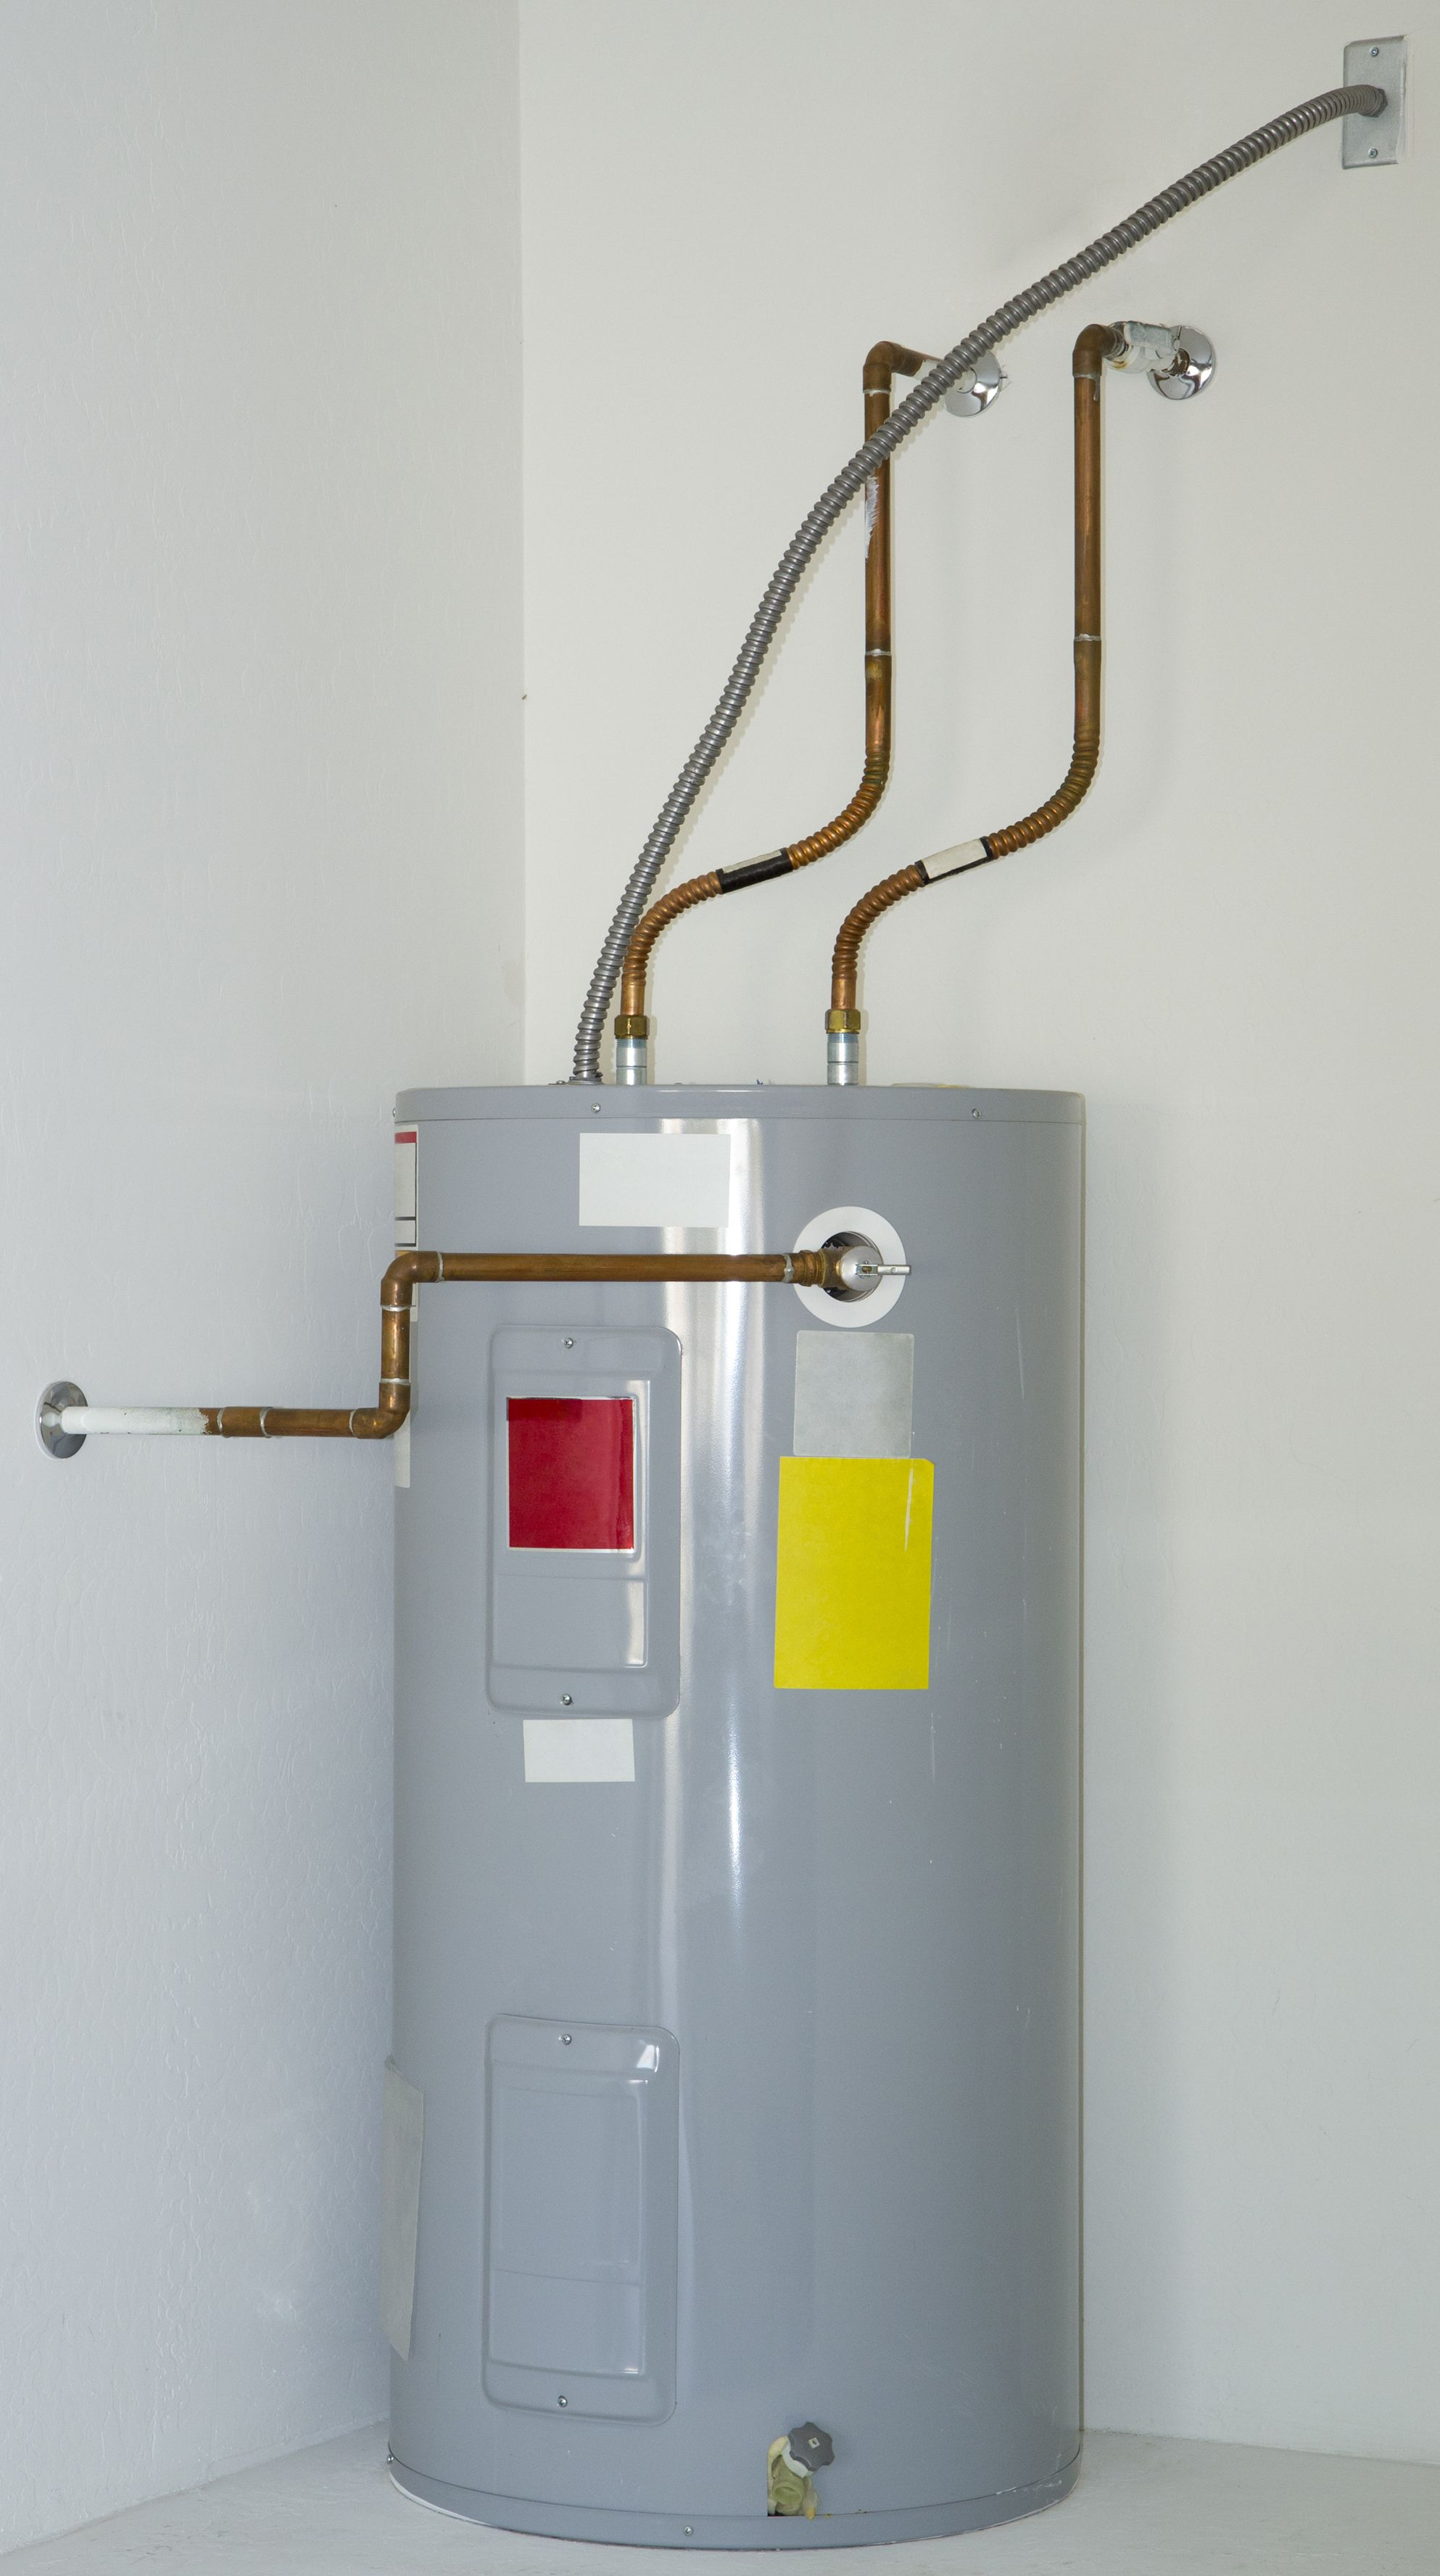 Can You Replace A Gas Hot Water Heater With An Electric One Answer In Order To Install